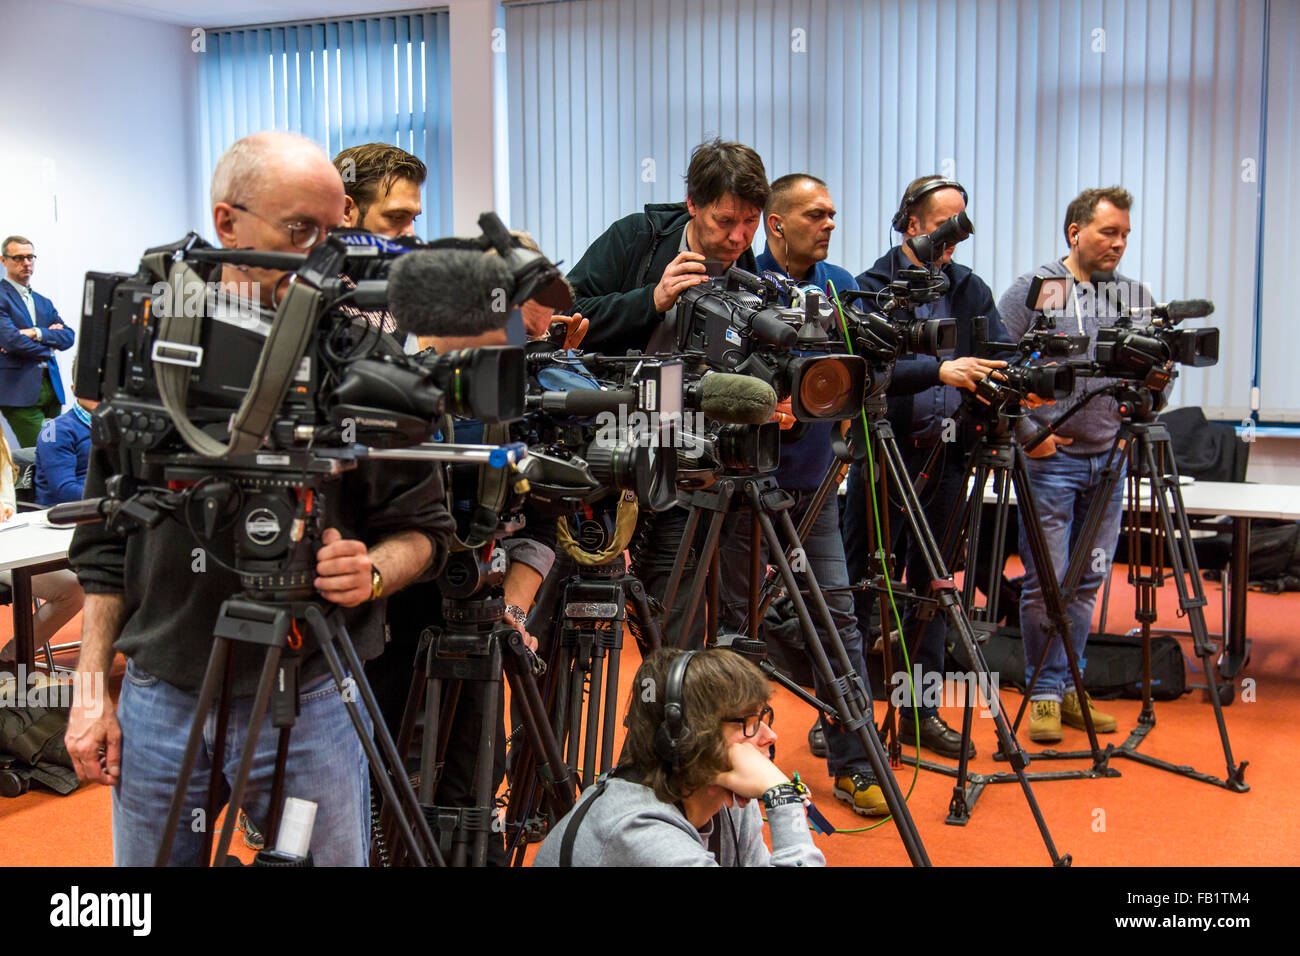 Camera teams of  different TV stations during a press conference, media, - Stock Image